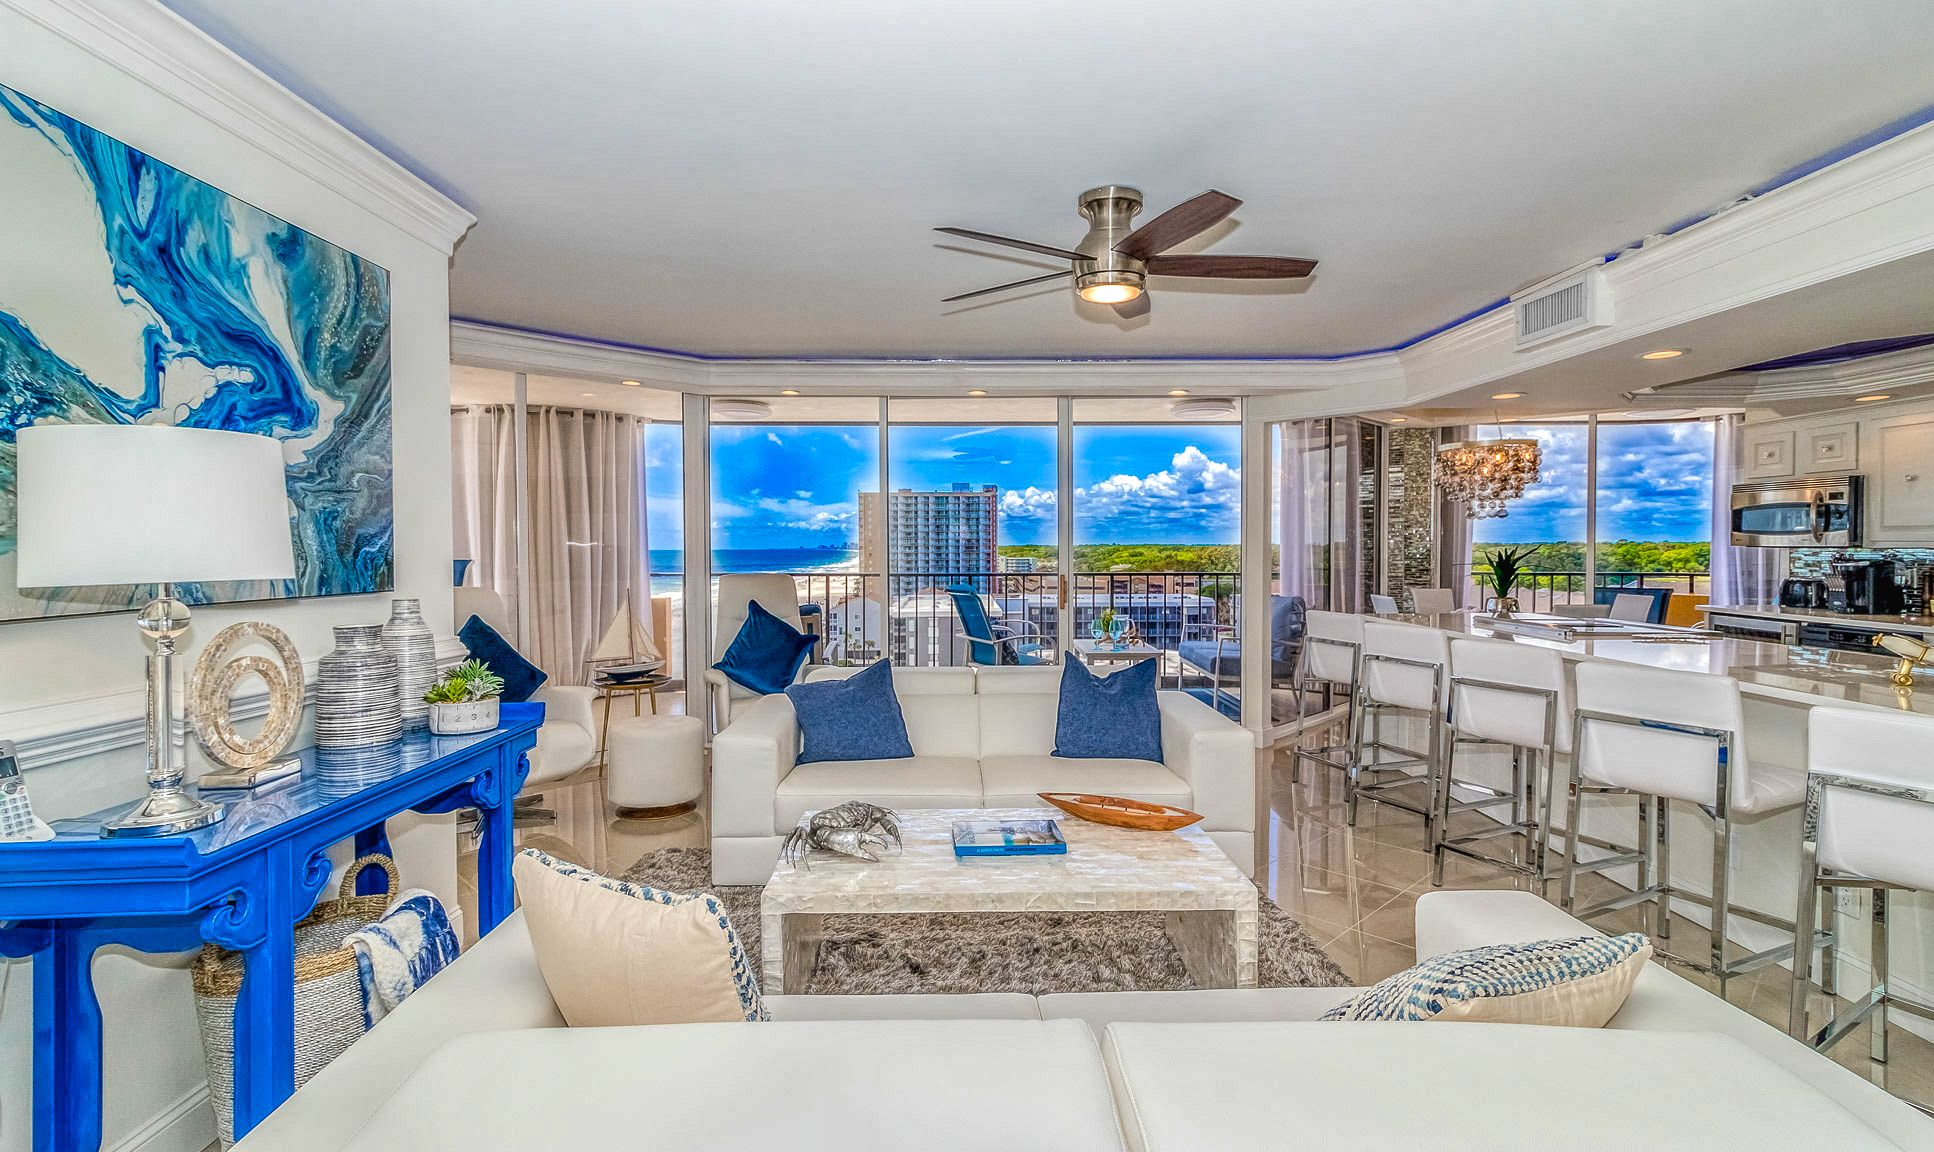 3. Grand Room with Ocean Views VRBO